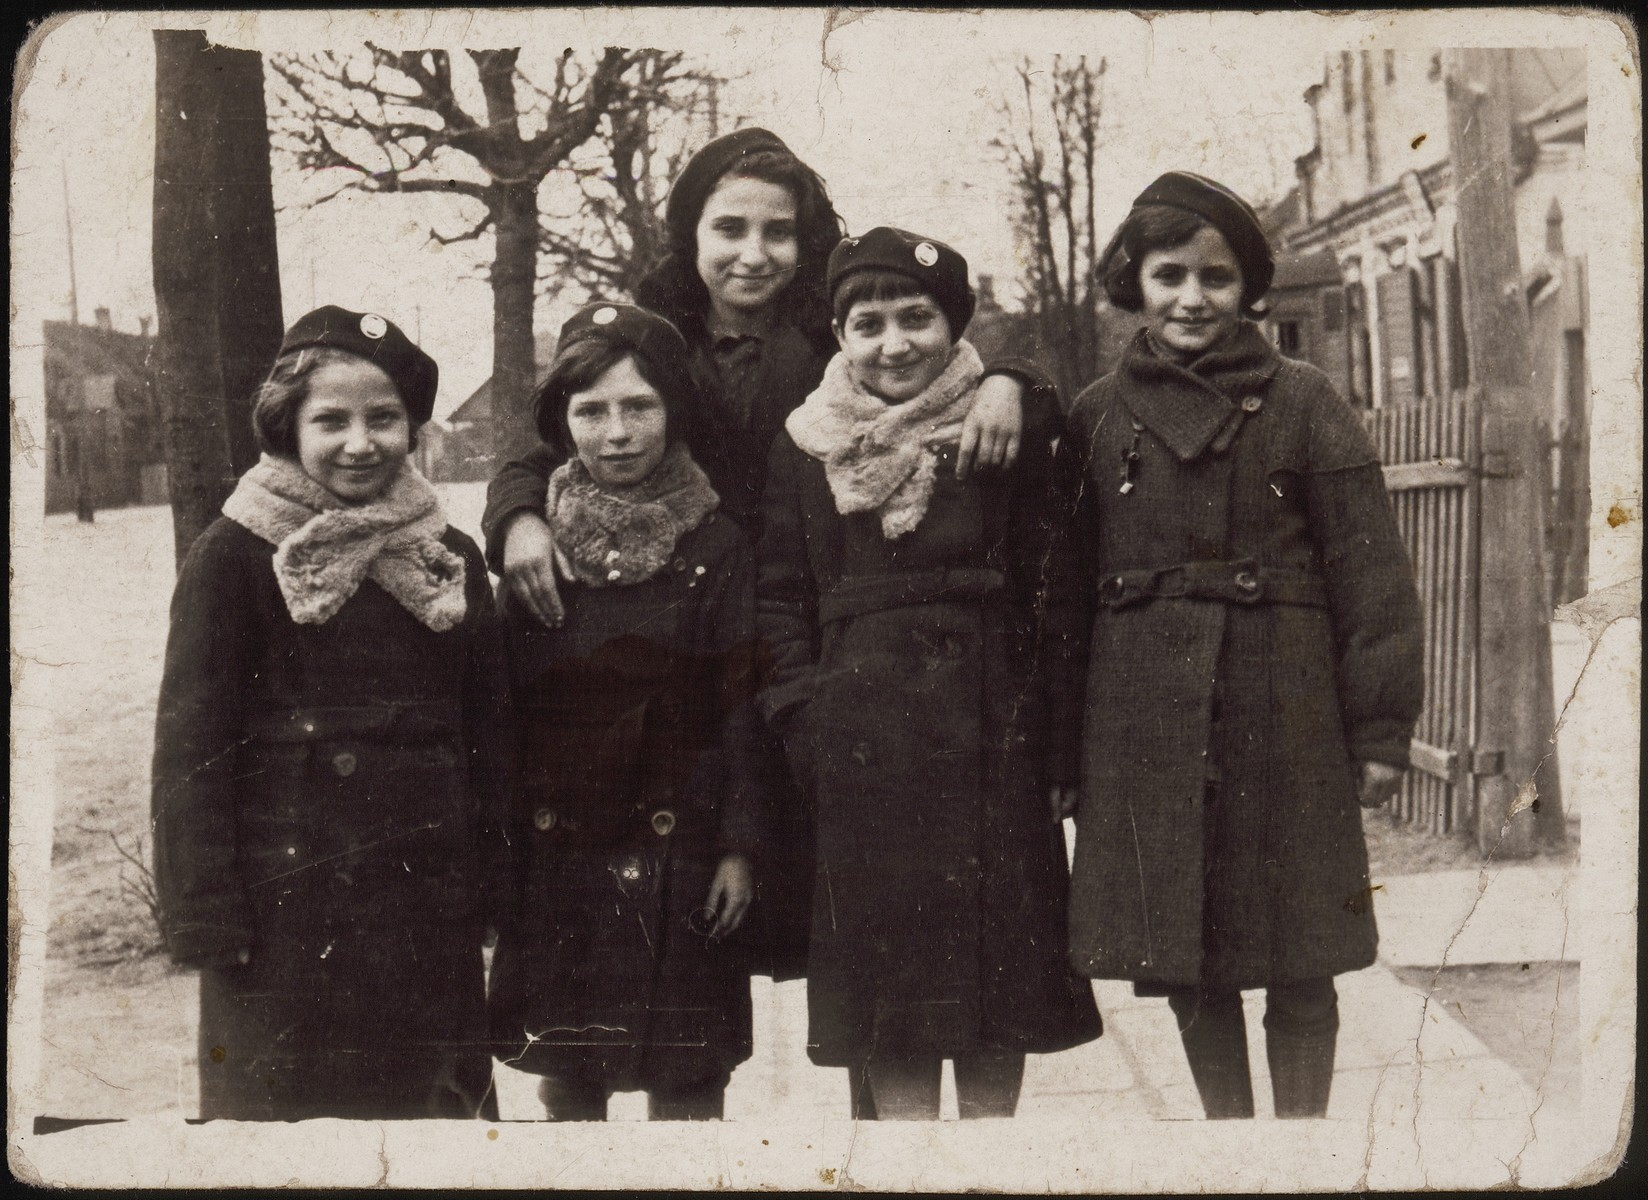 Five school girls wearing winter coats stand together on a street in Eisiskes.